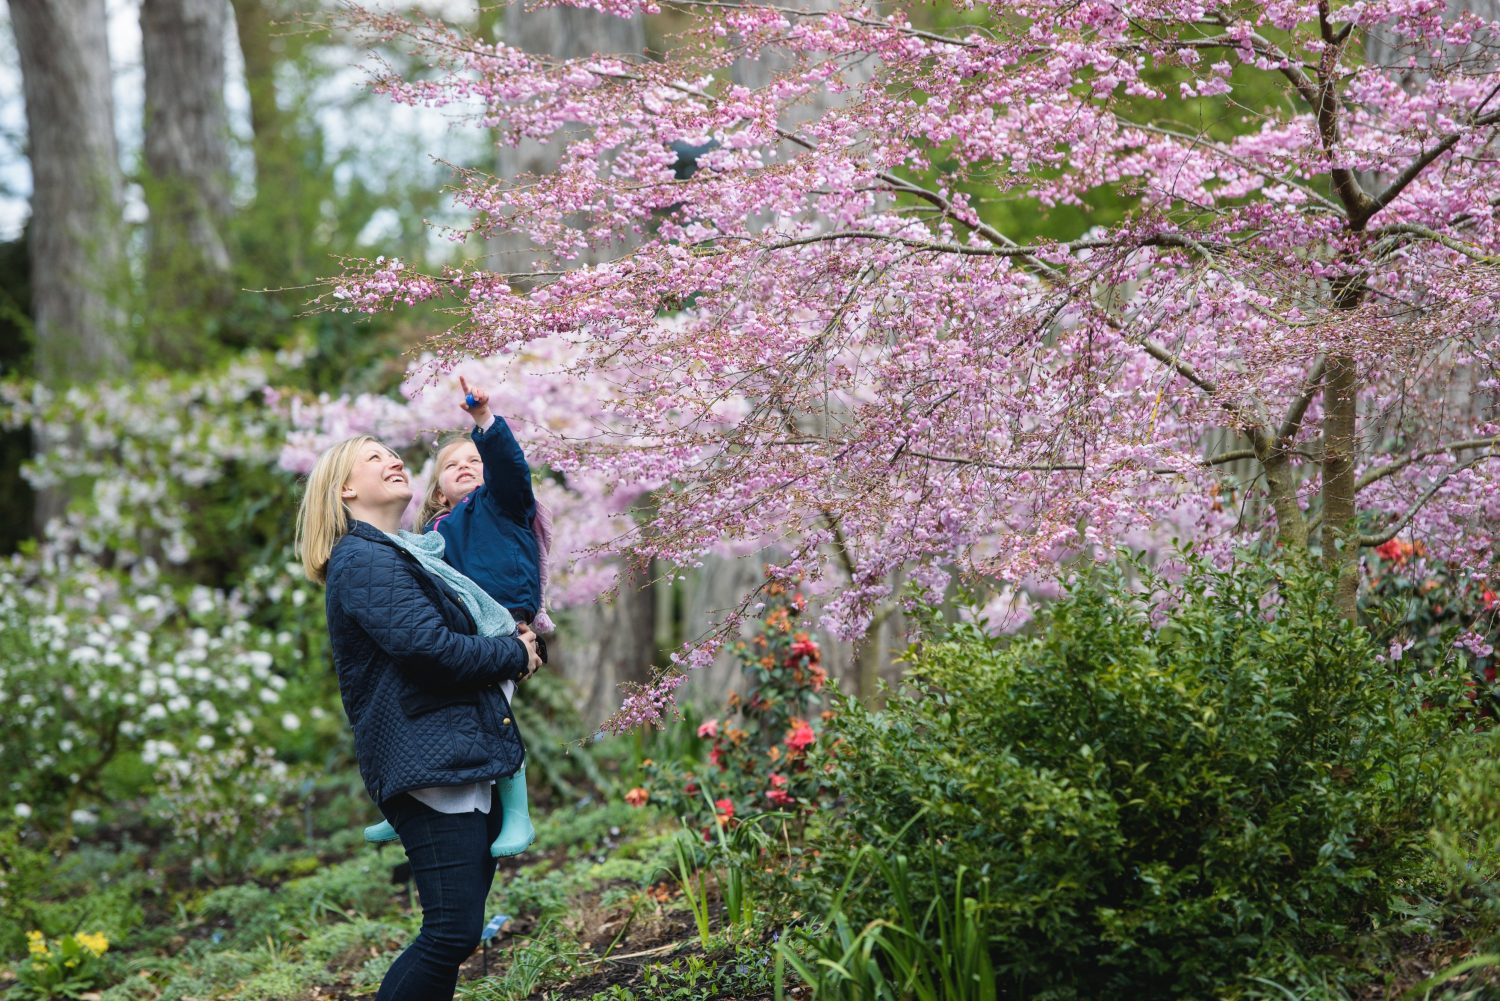 A mother and child look at Prunus 'Pink Ballerina' blossom in spring at RHS Garden Wisley. RHS / Georgi Mabee